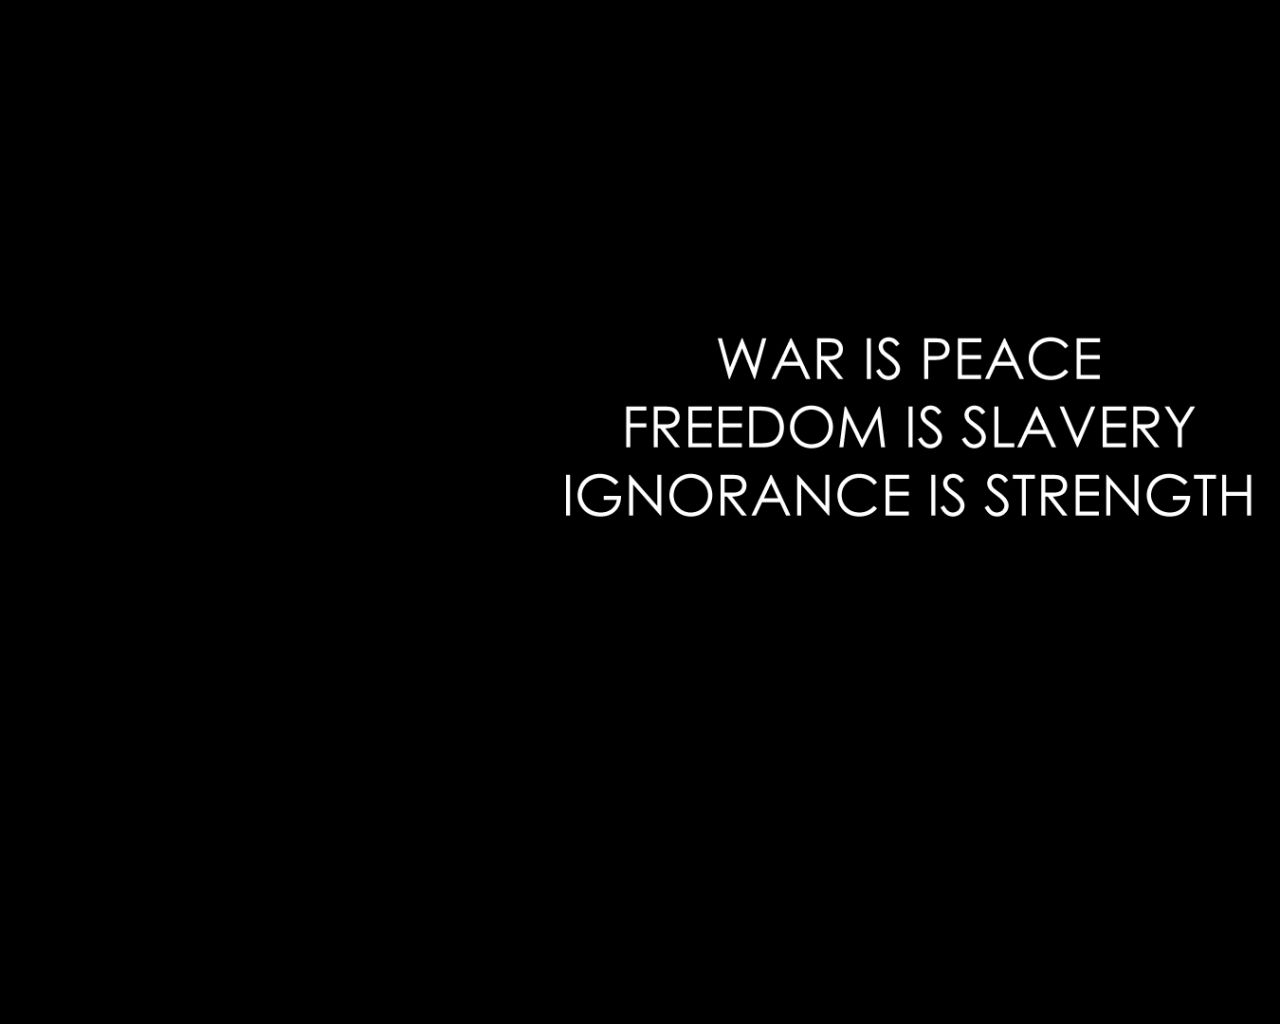 George Orwell 1984 Quotes 1984 Quotes Hopelessness Quotes Images Picture